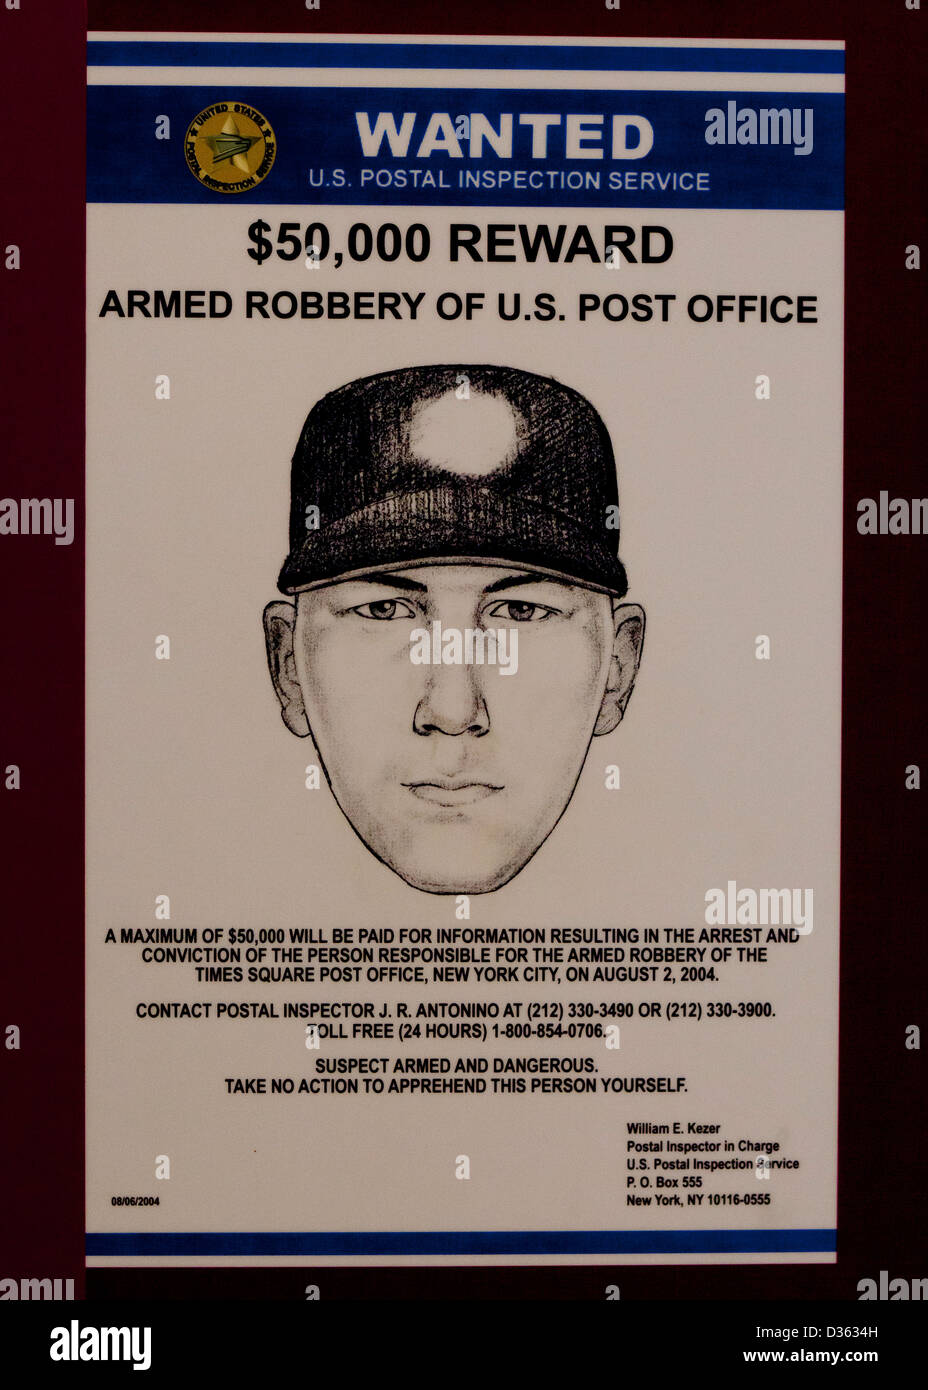 Wanted Poster Photos Wanted Poster Images Alamy – Wanted Person Poster